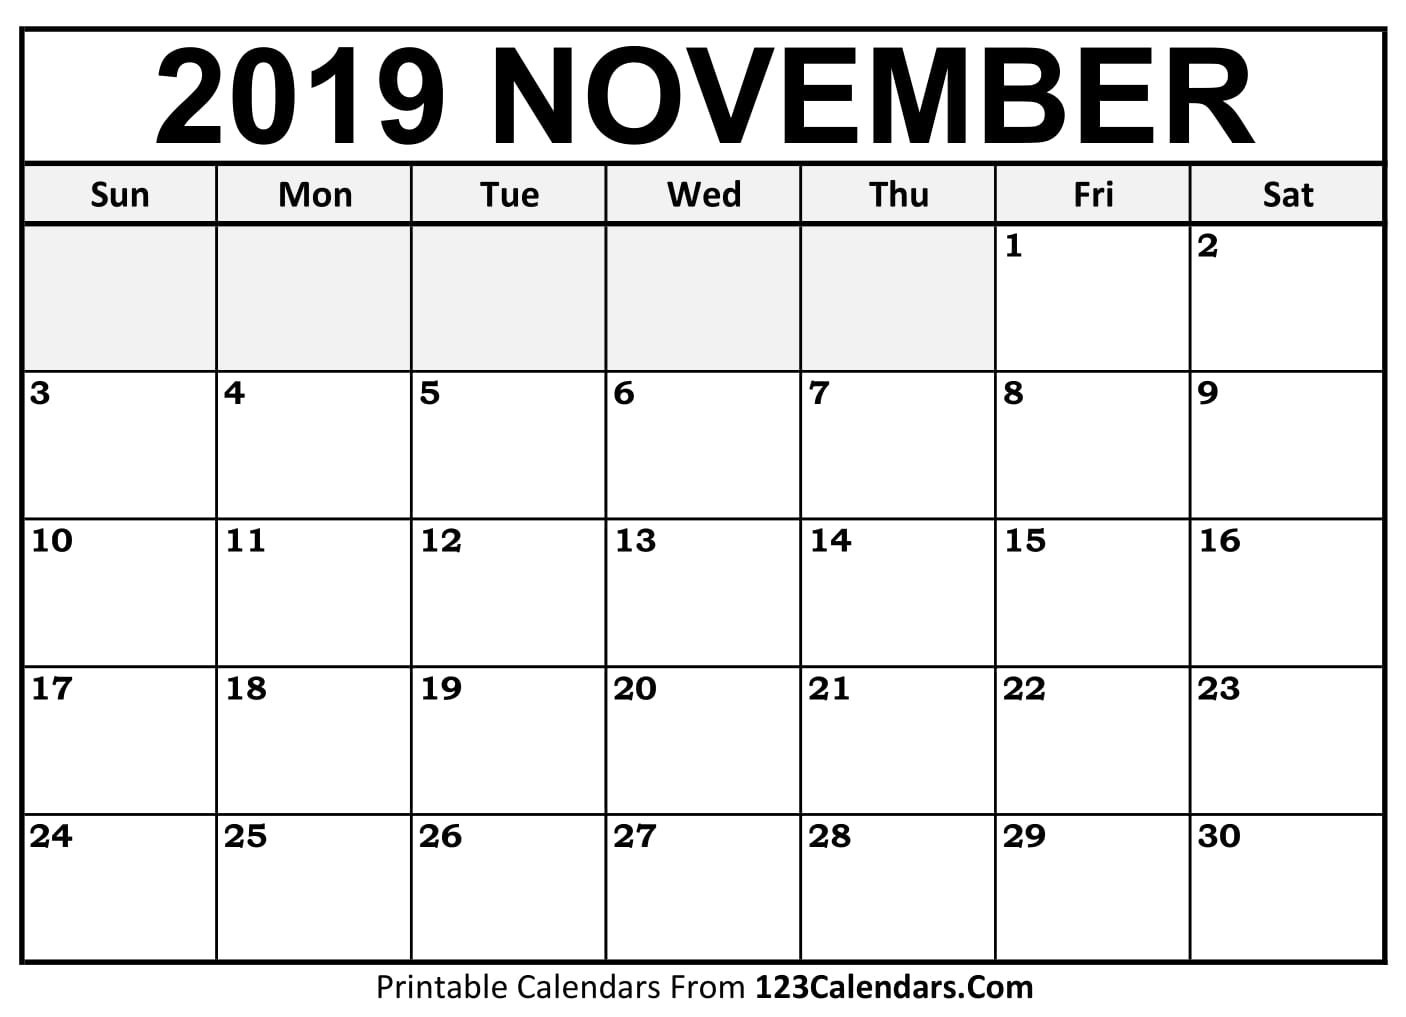 photograph relating to Printable Nov Calendar named November 2019 Printable Calendar